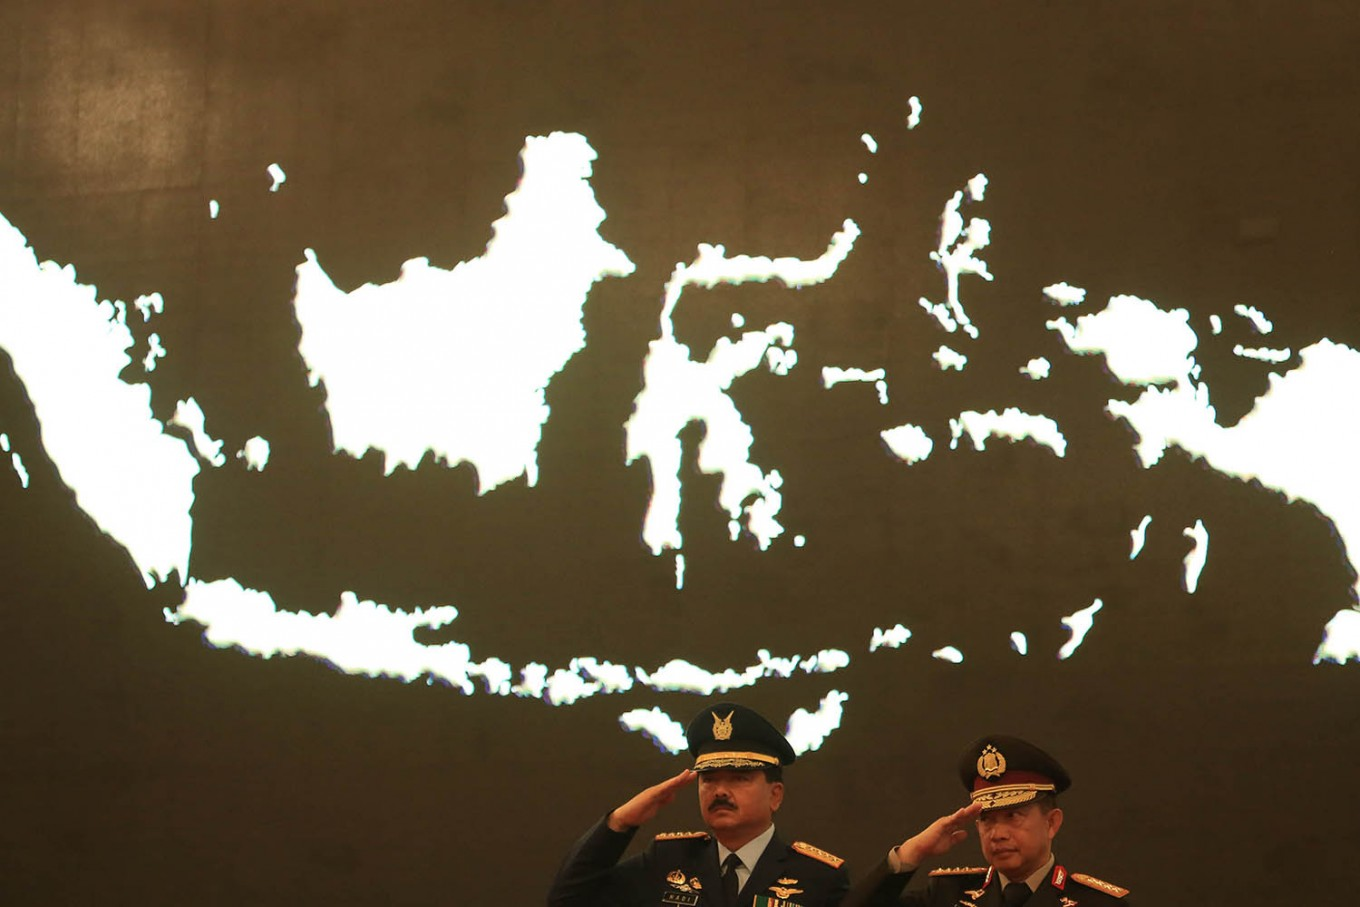 Joint commands to boost TNI's cohesiveness as it observes 74th anniversary